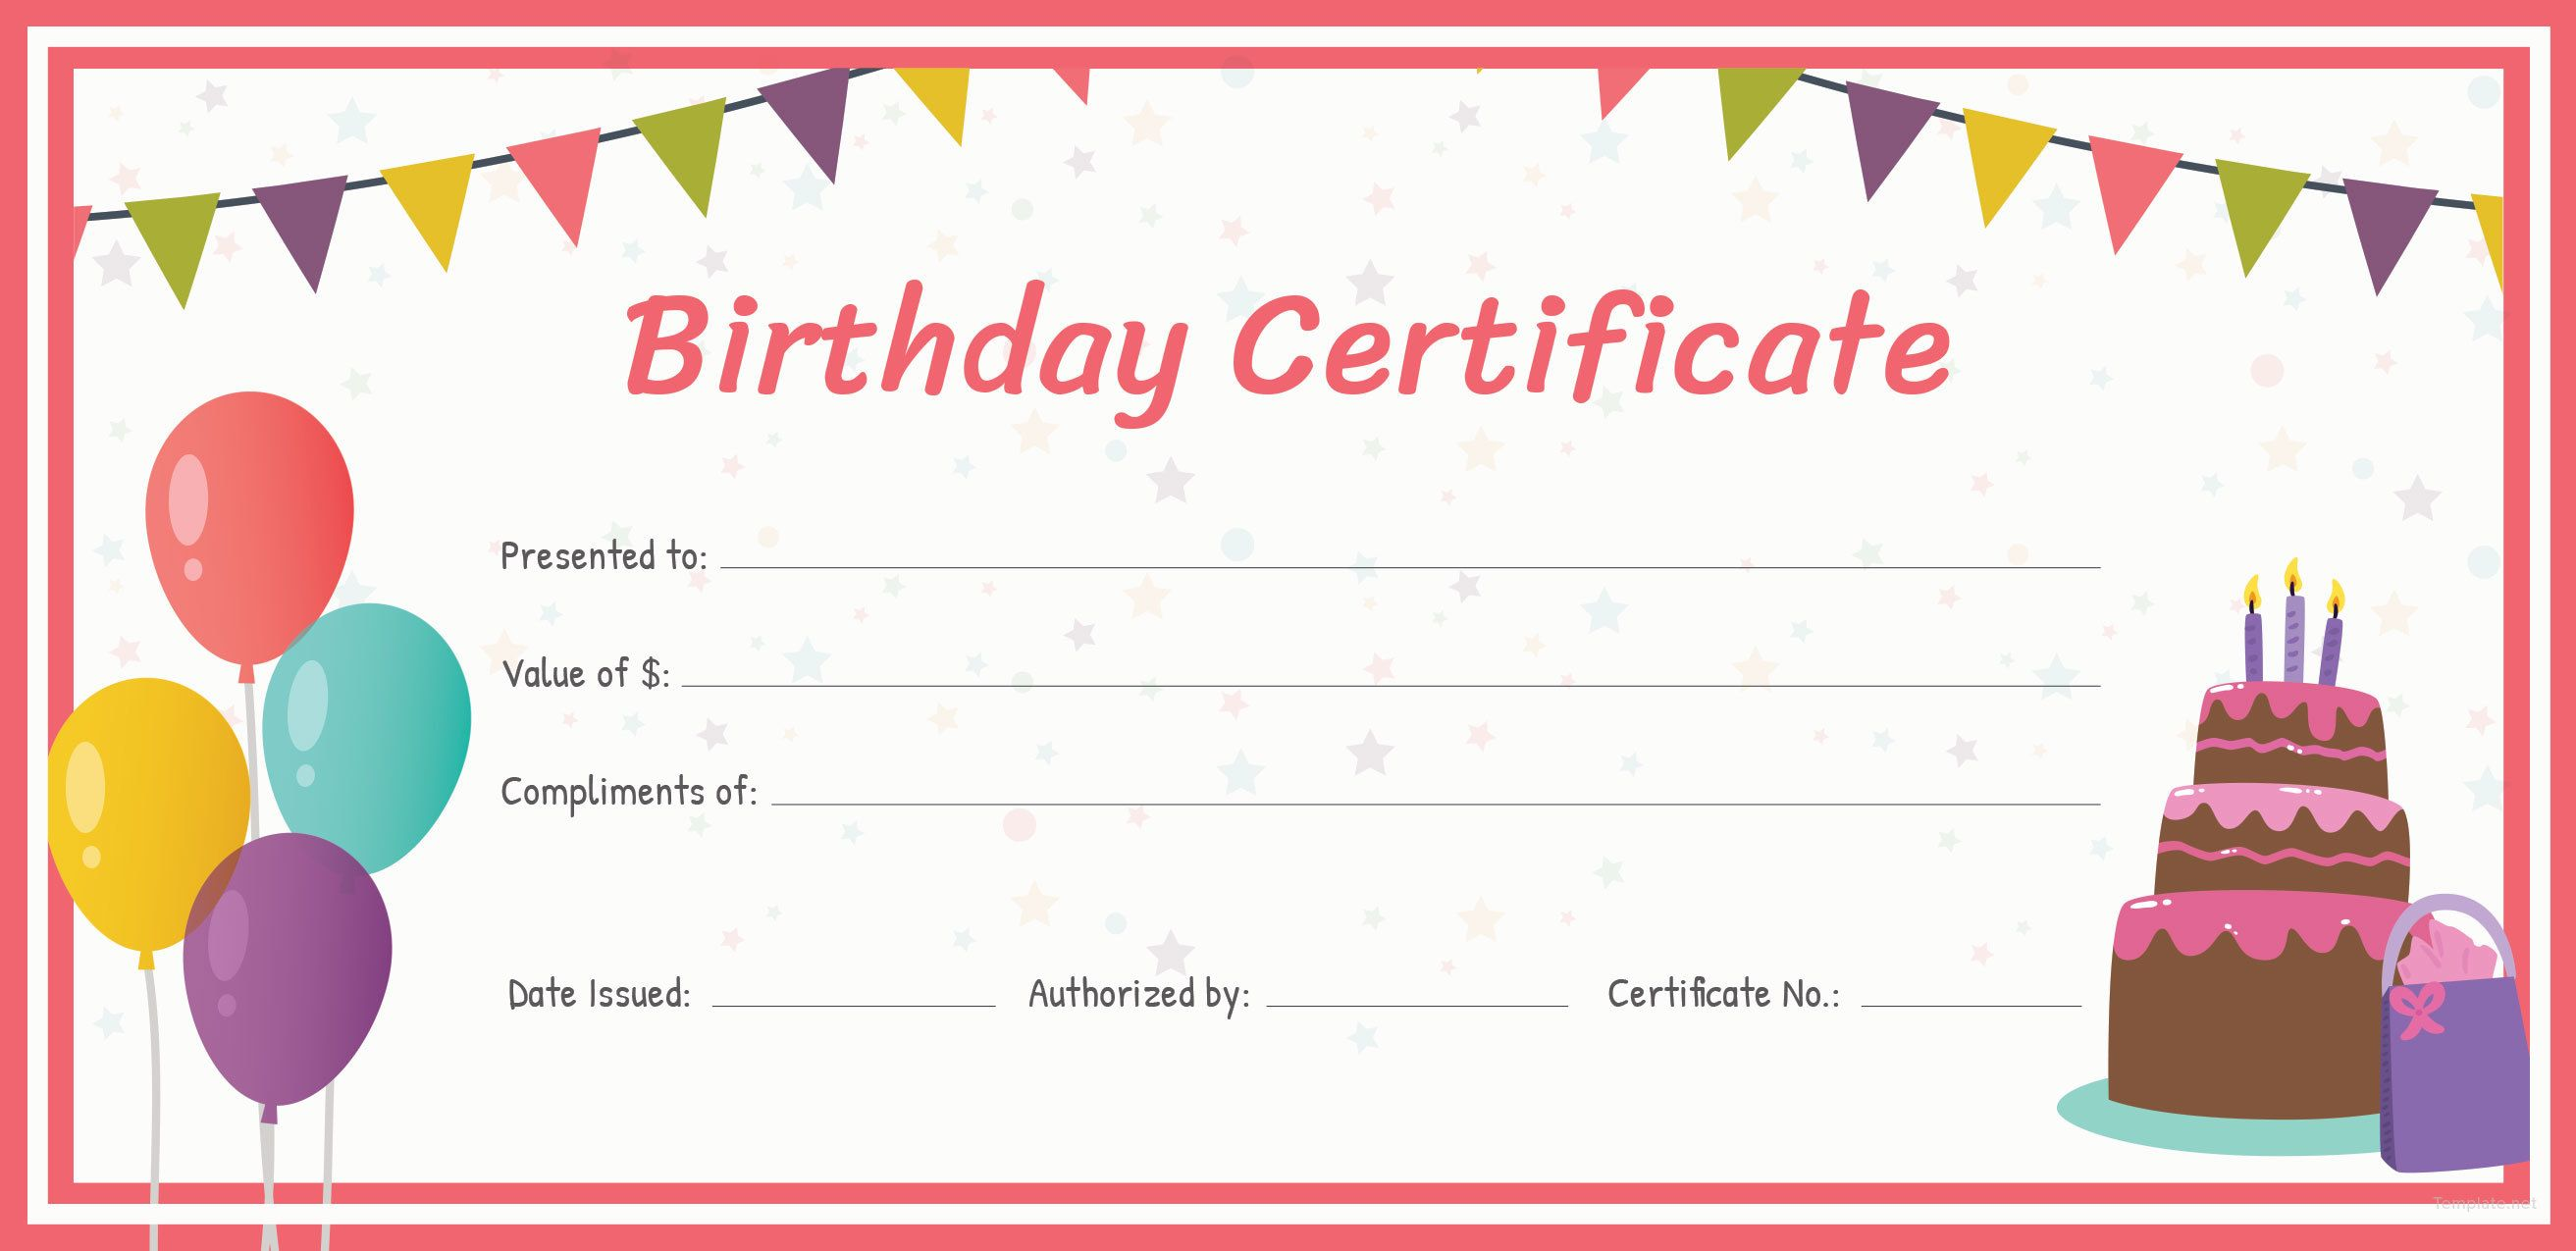 Birthday Gift Certificate Template Free Pdf Word Psd Apple Pages Google Docs Illustrator Publisher Free Gift Certificate Template Gift Certificate Template Word Gift Certificate Template